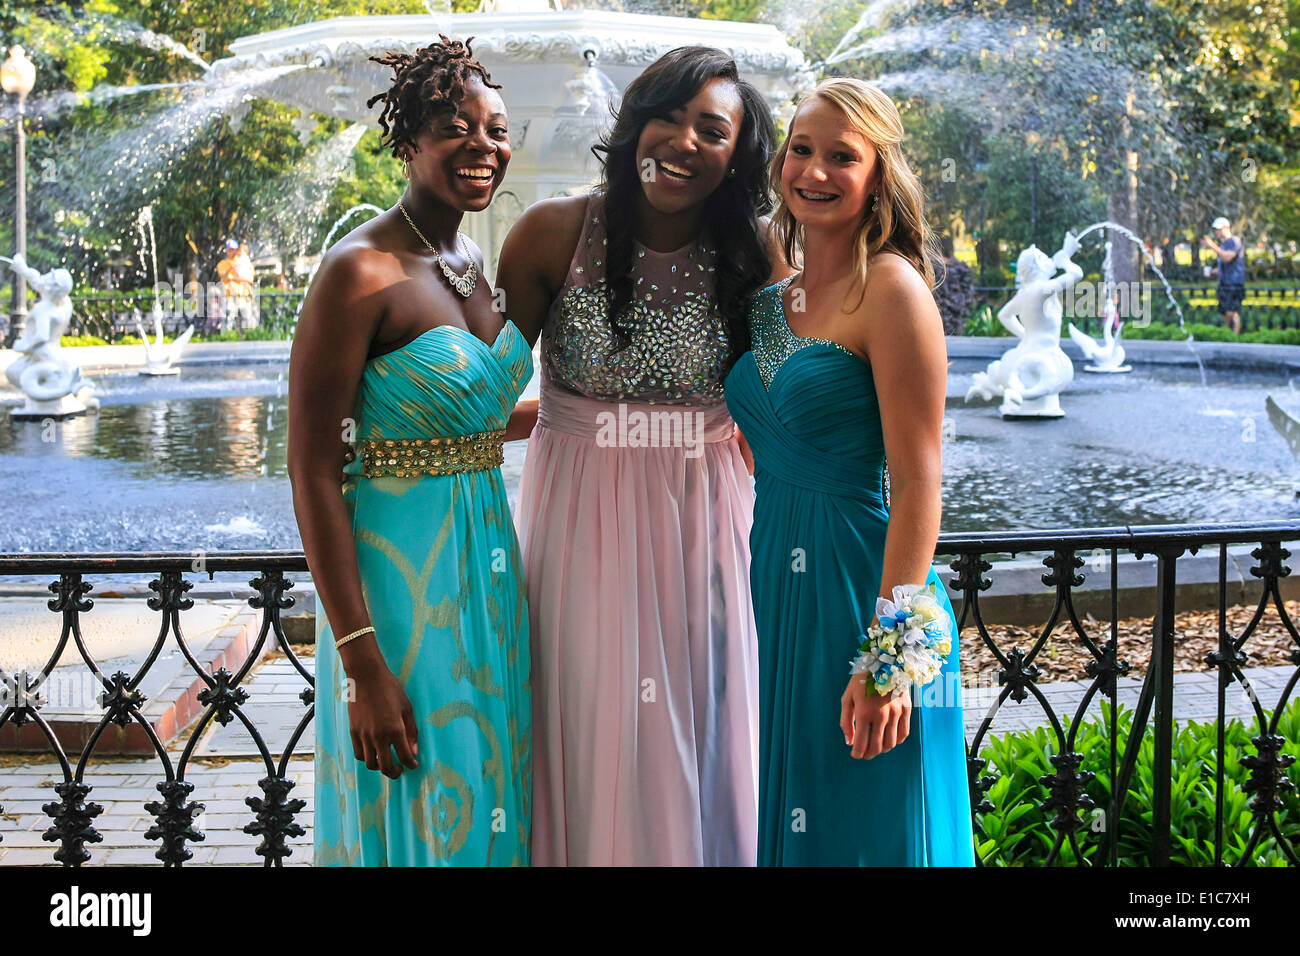 High School students dressed up for Prom Night in Forseyth Park ...